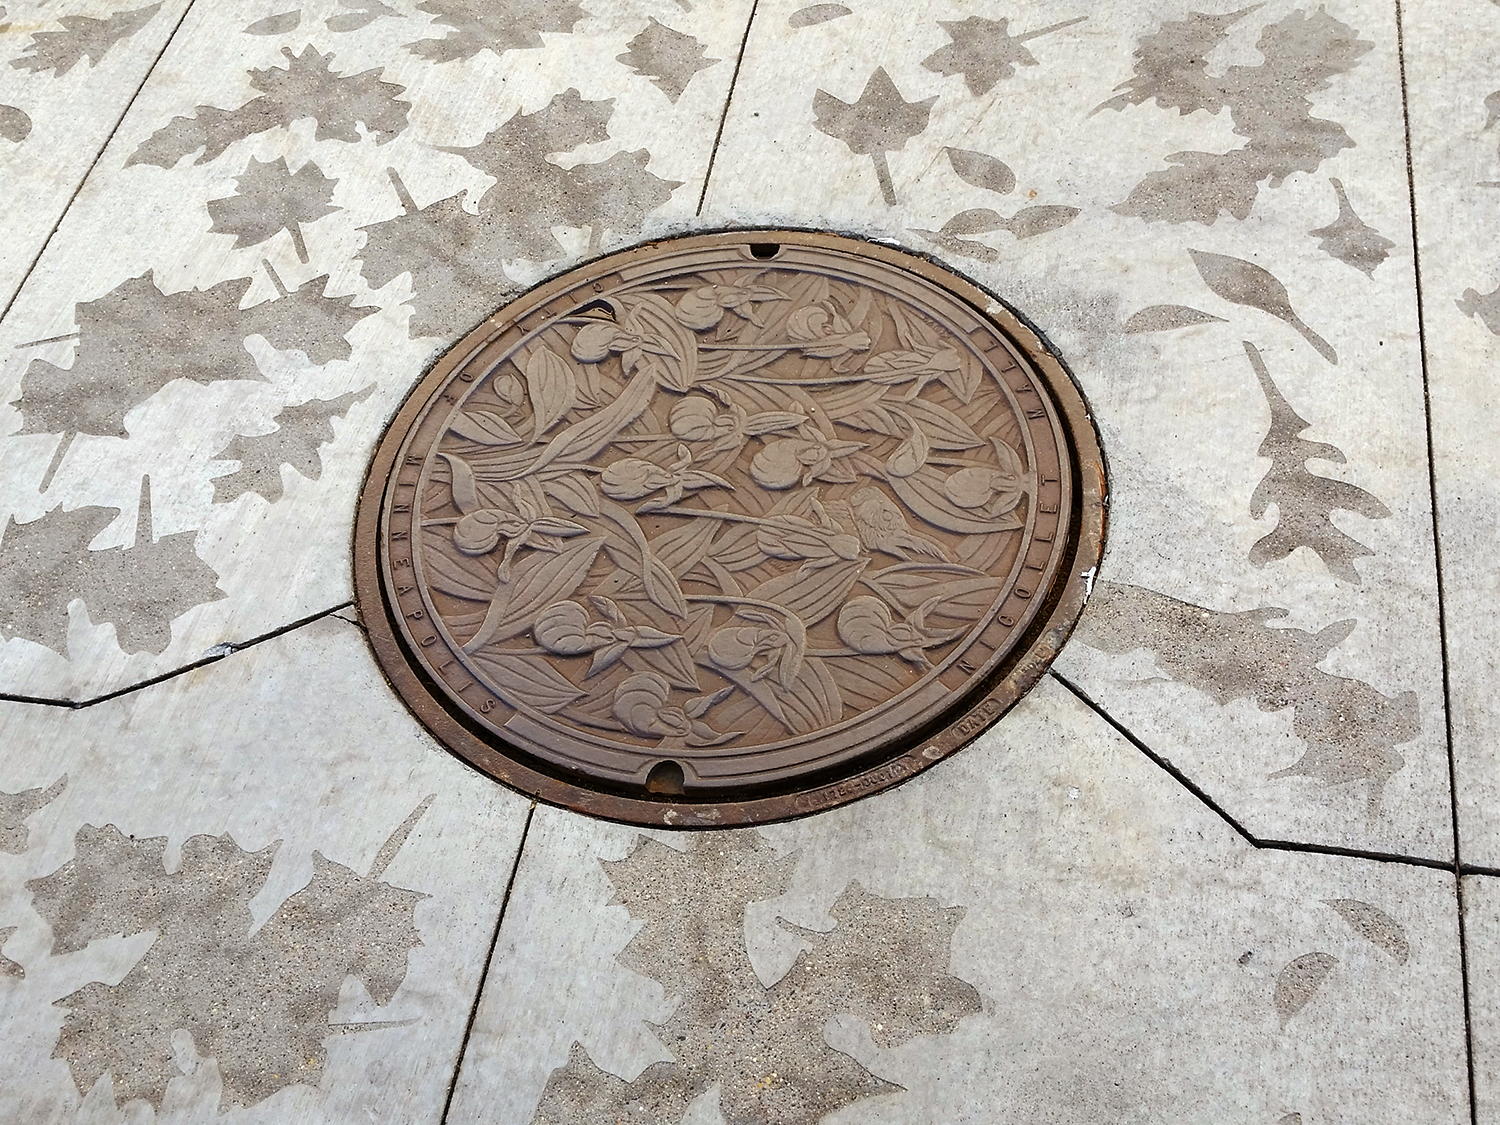 One of three sandblasted pavement patterns by JCFO with Ladyslipper manhole cover by Kate Burke. Photo: Mary Altman.